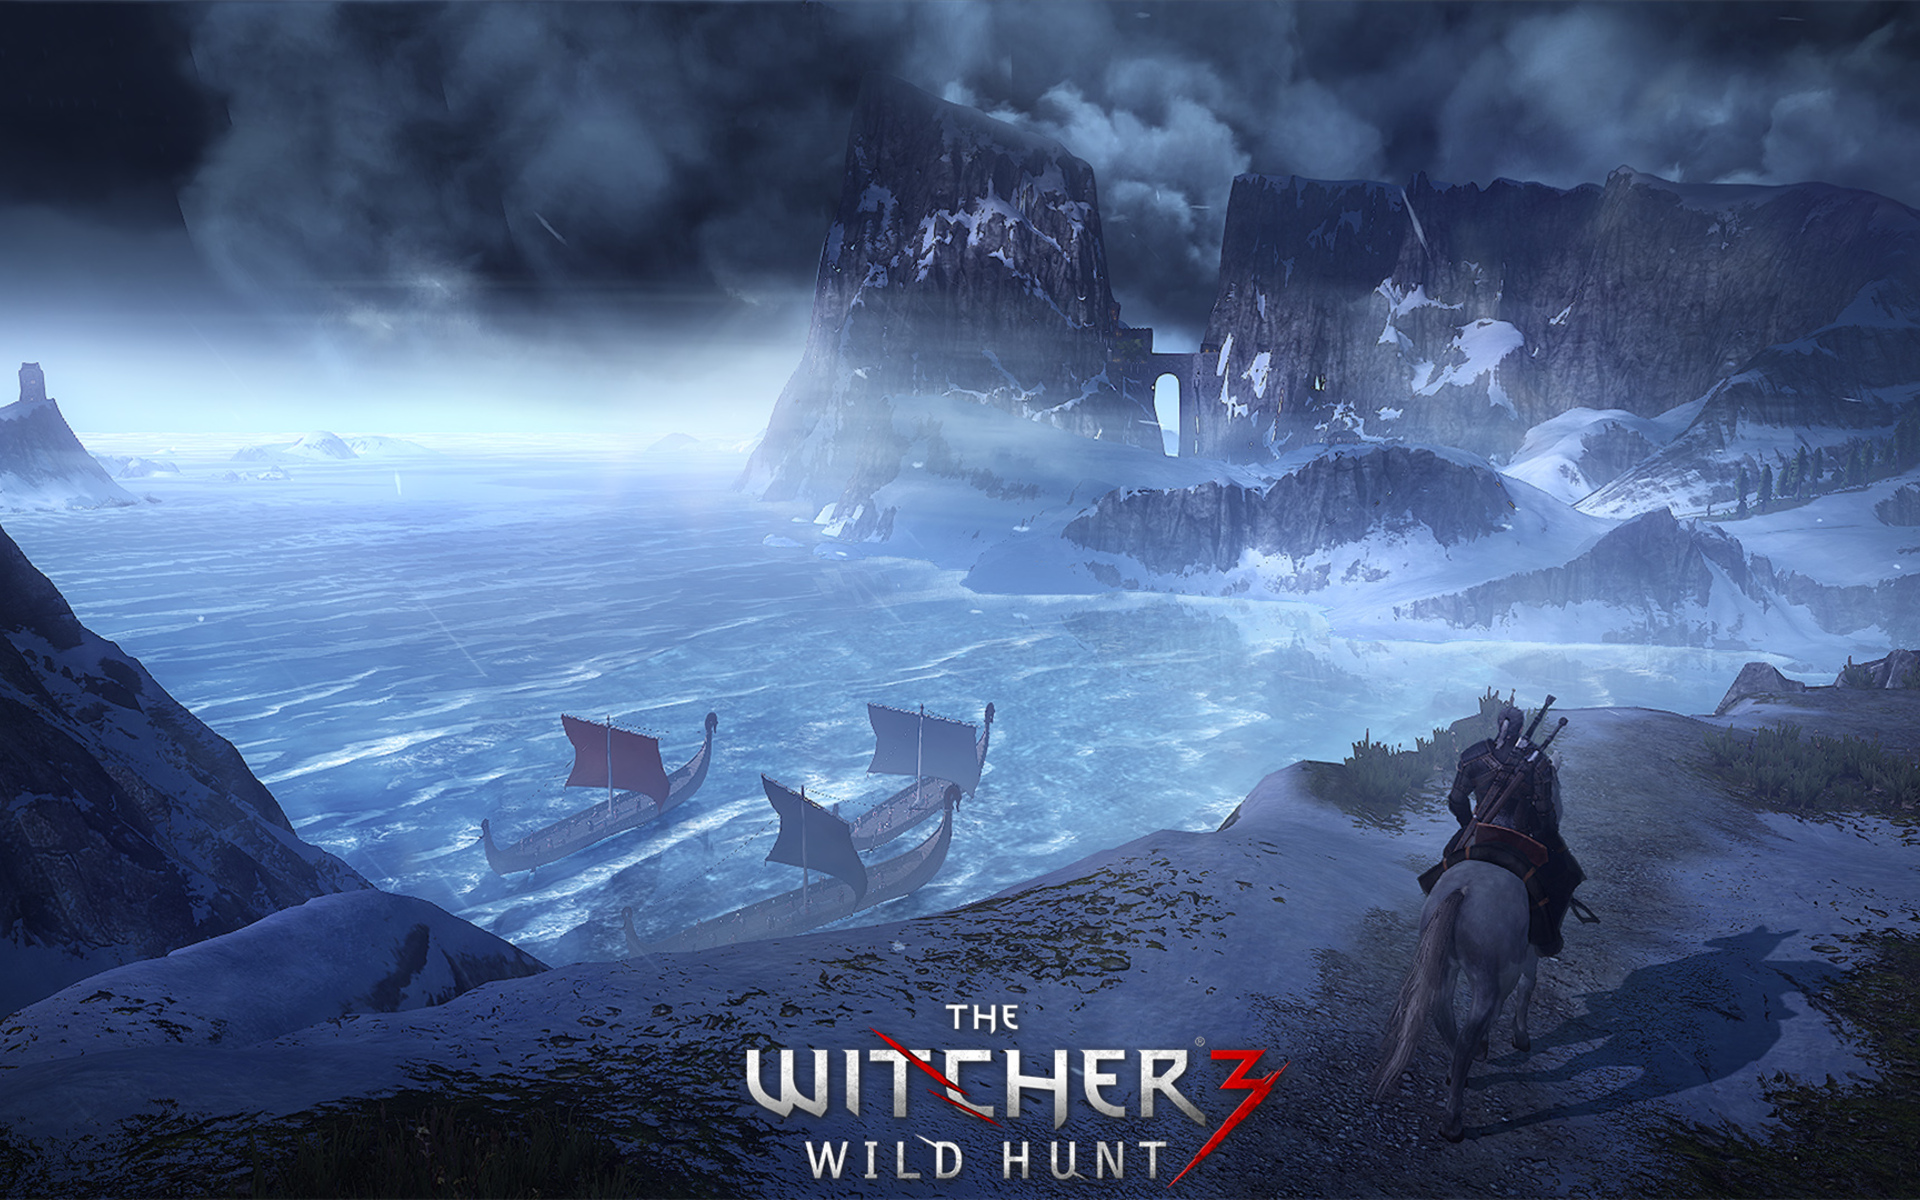 1920x1200 The Witcher 3 Game Hd 1080p Resolution Hd 4k Wallpapers